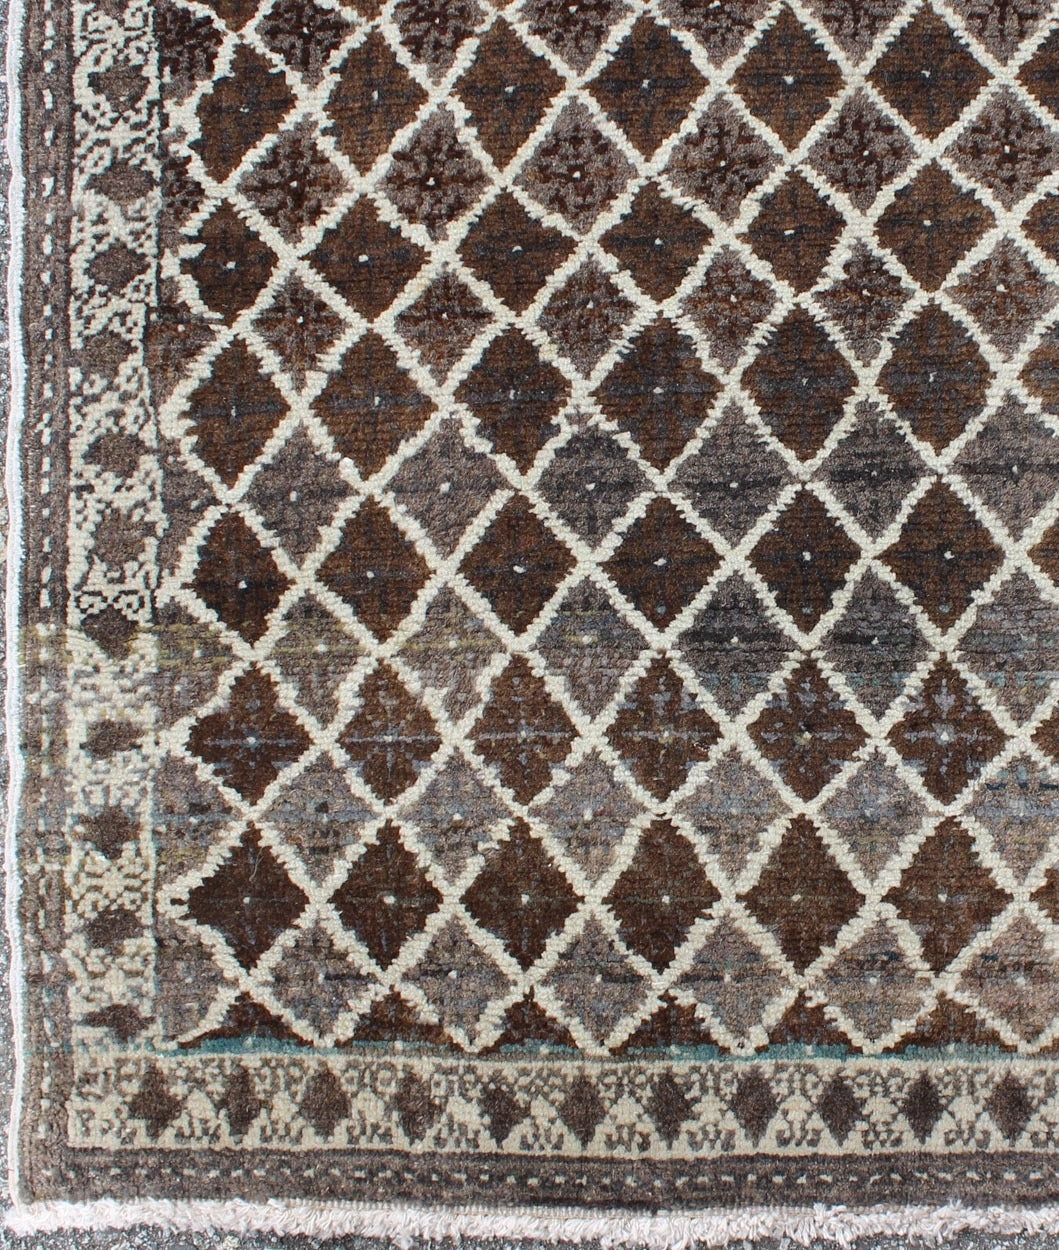 Turkish Rug With Unique Design For Sale At 1stdibs